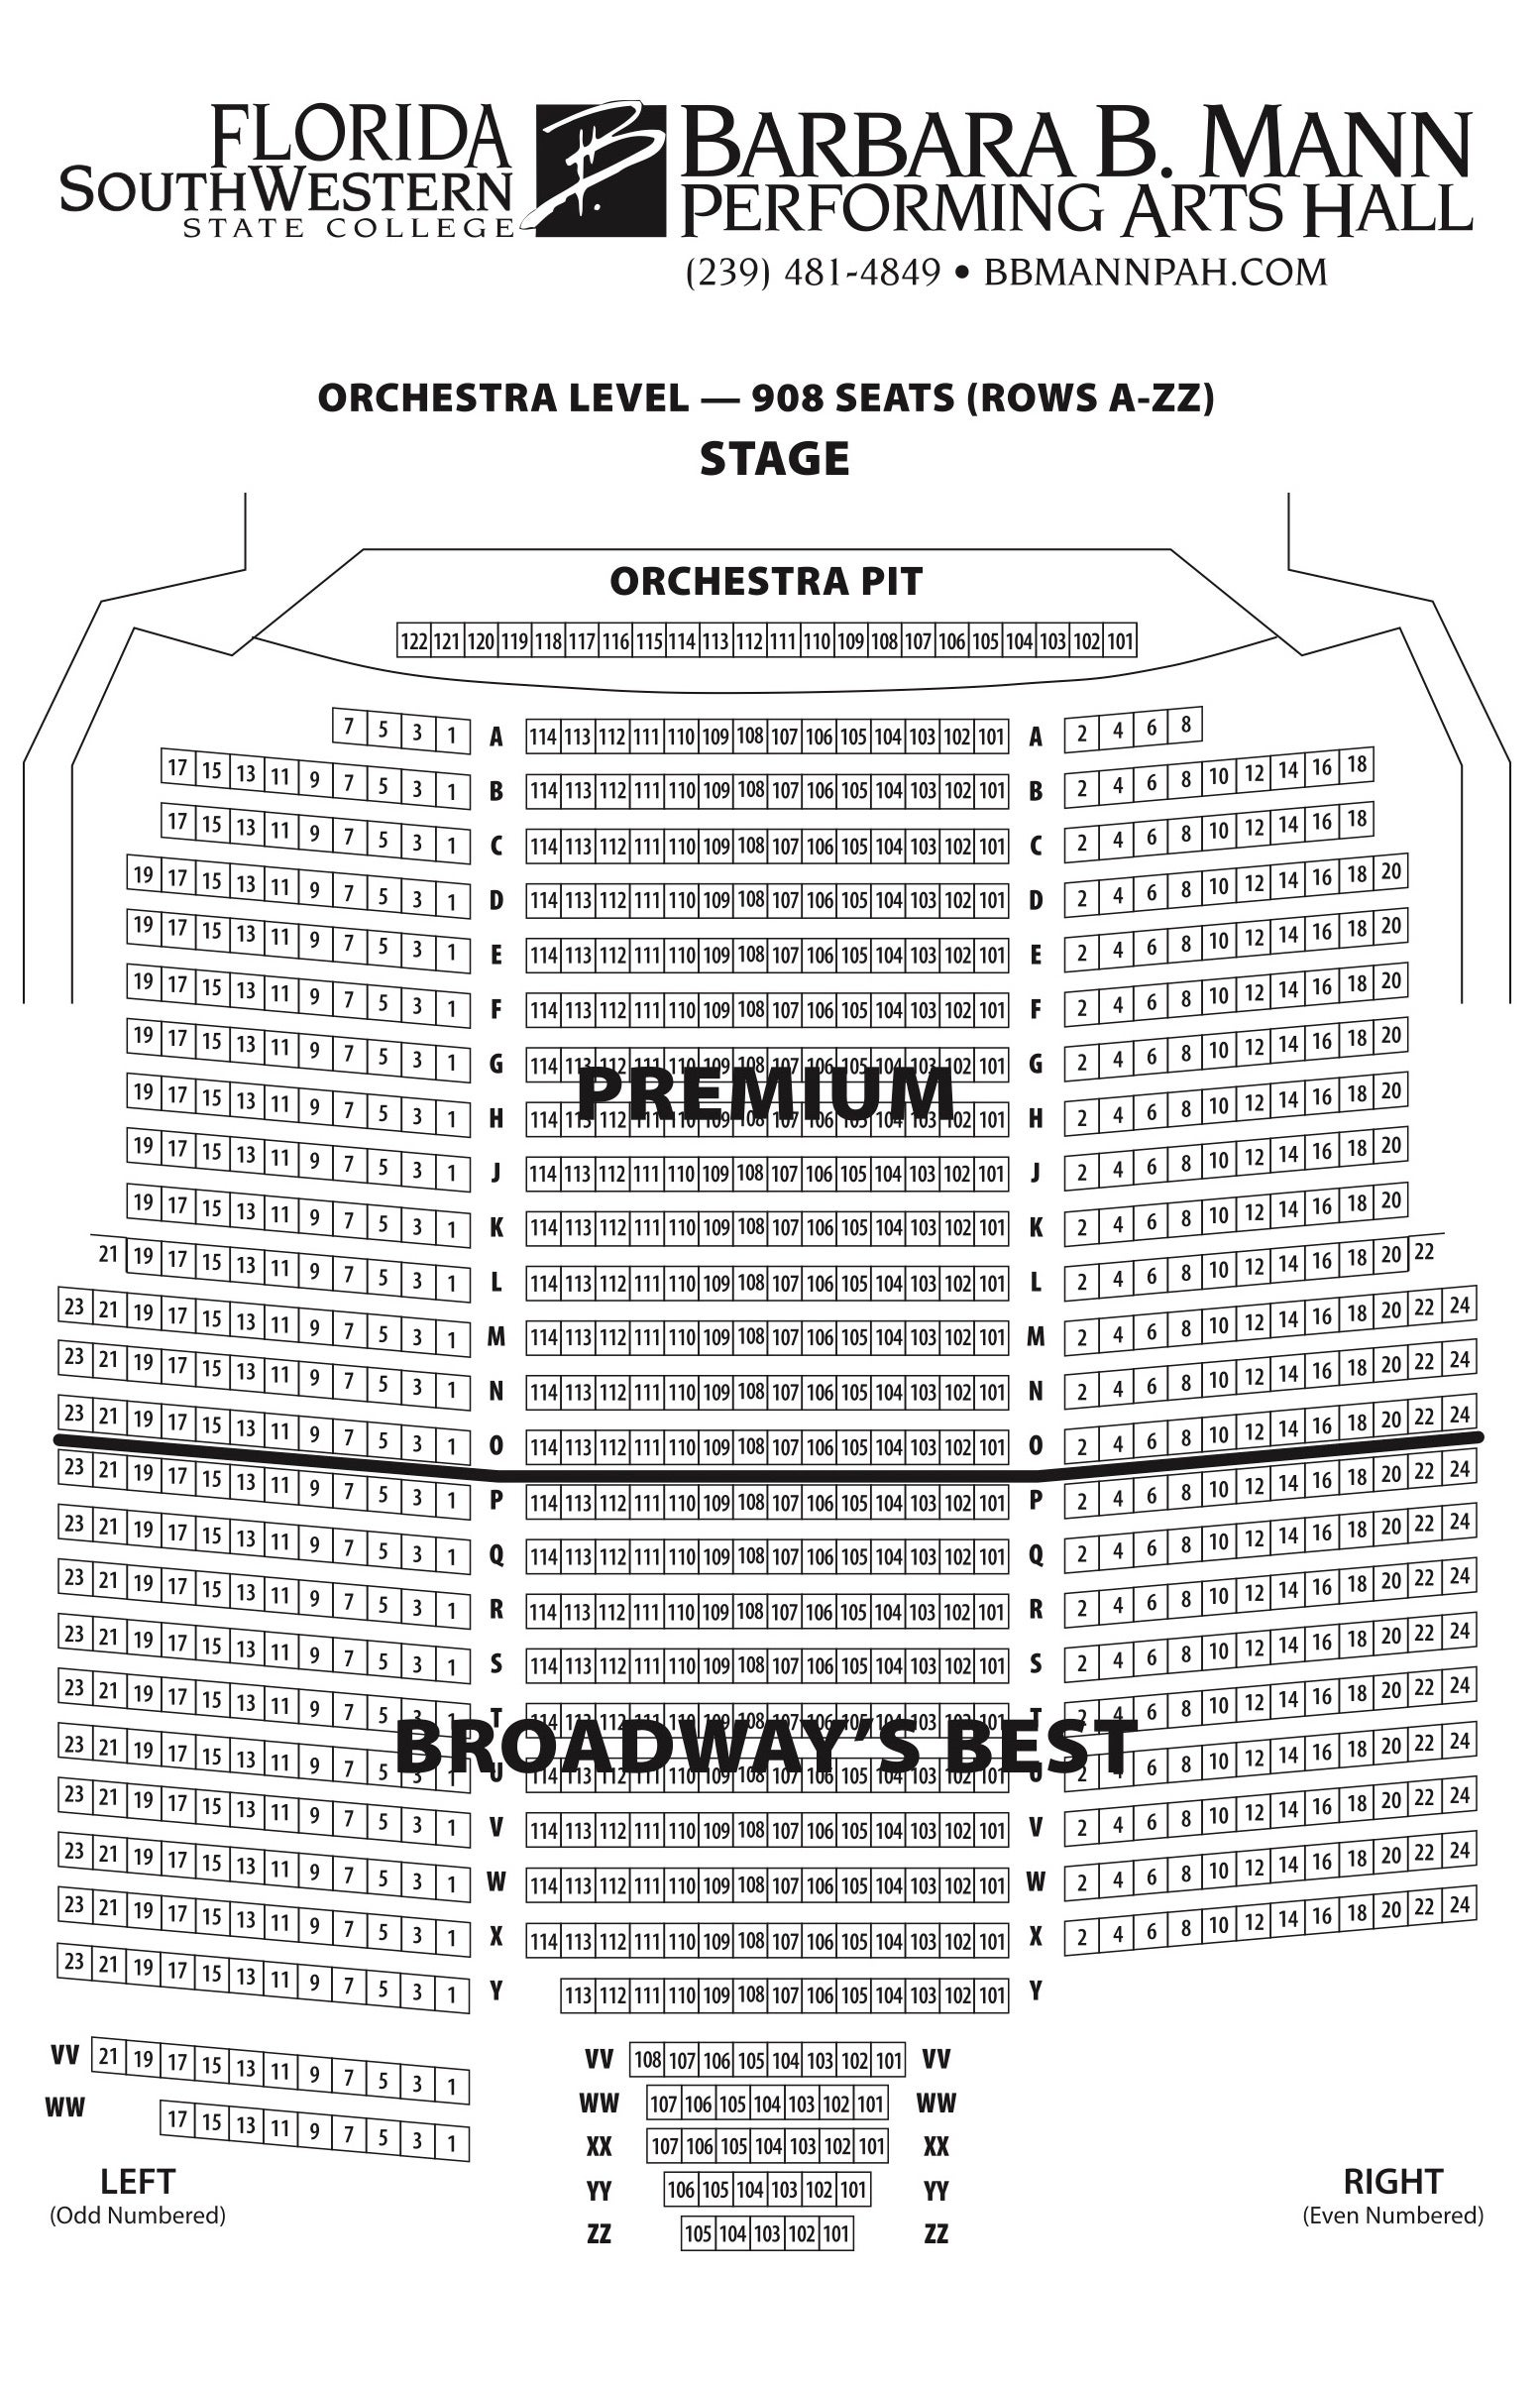 Seating Charts Barbara B Mann Performing Arts Hall Black Box Theatre Diagram Ucf View Large Map Download